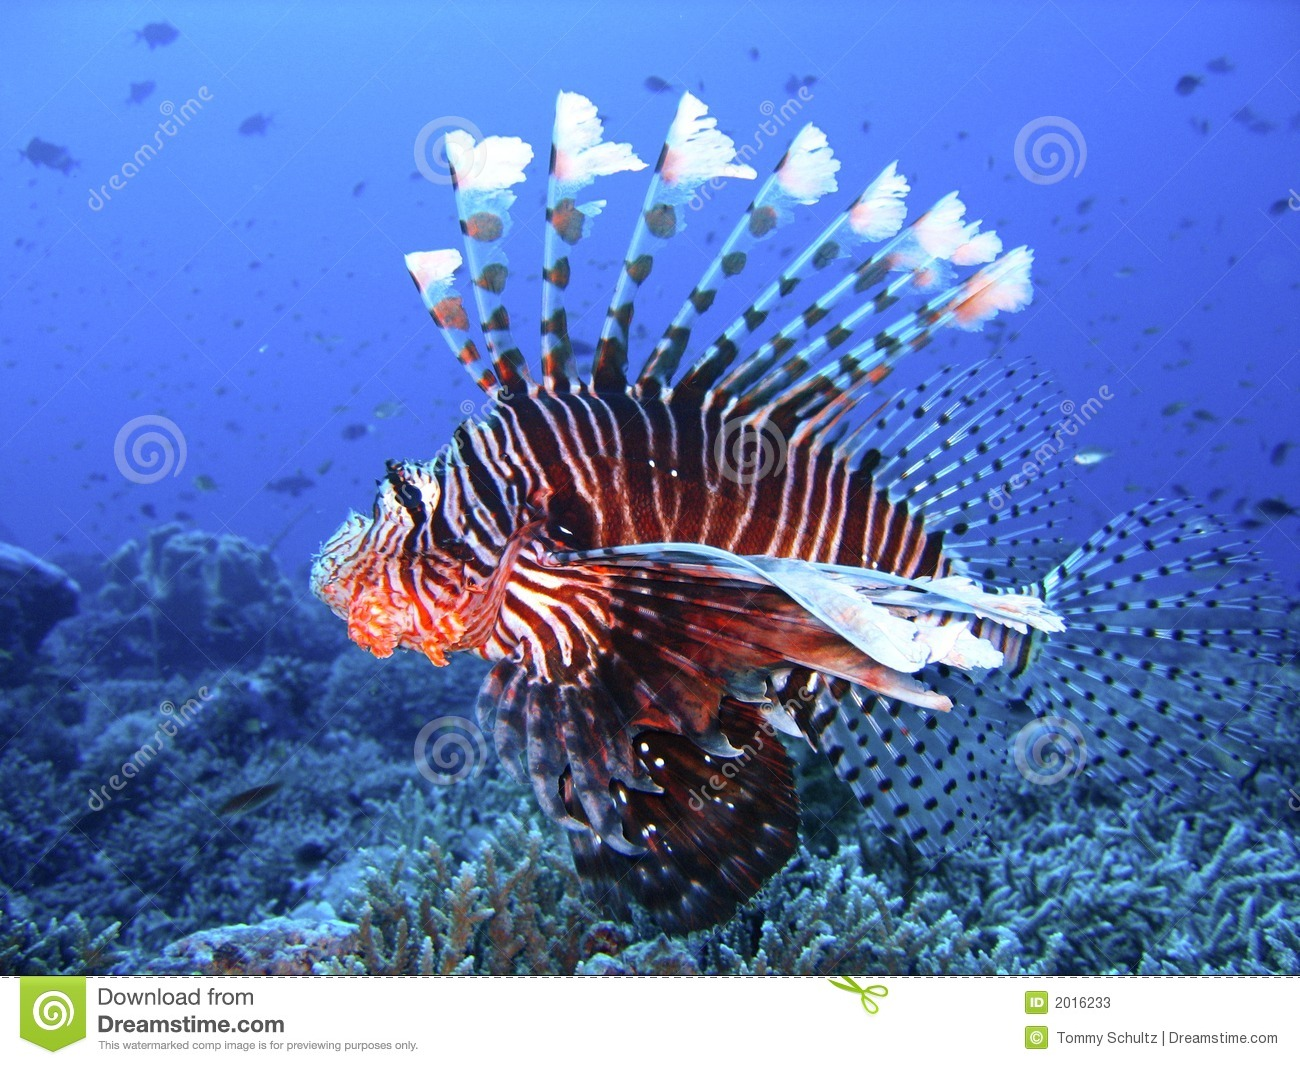 Colorful Animal Print Wallpaper Brightly Colored Lion Fish In Deep Blue Water Stock Image